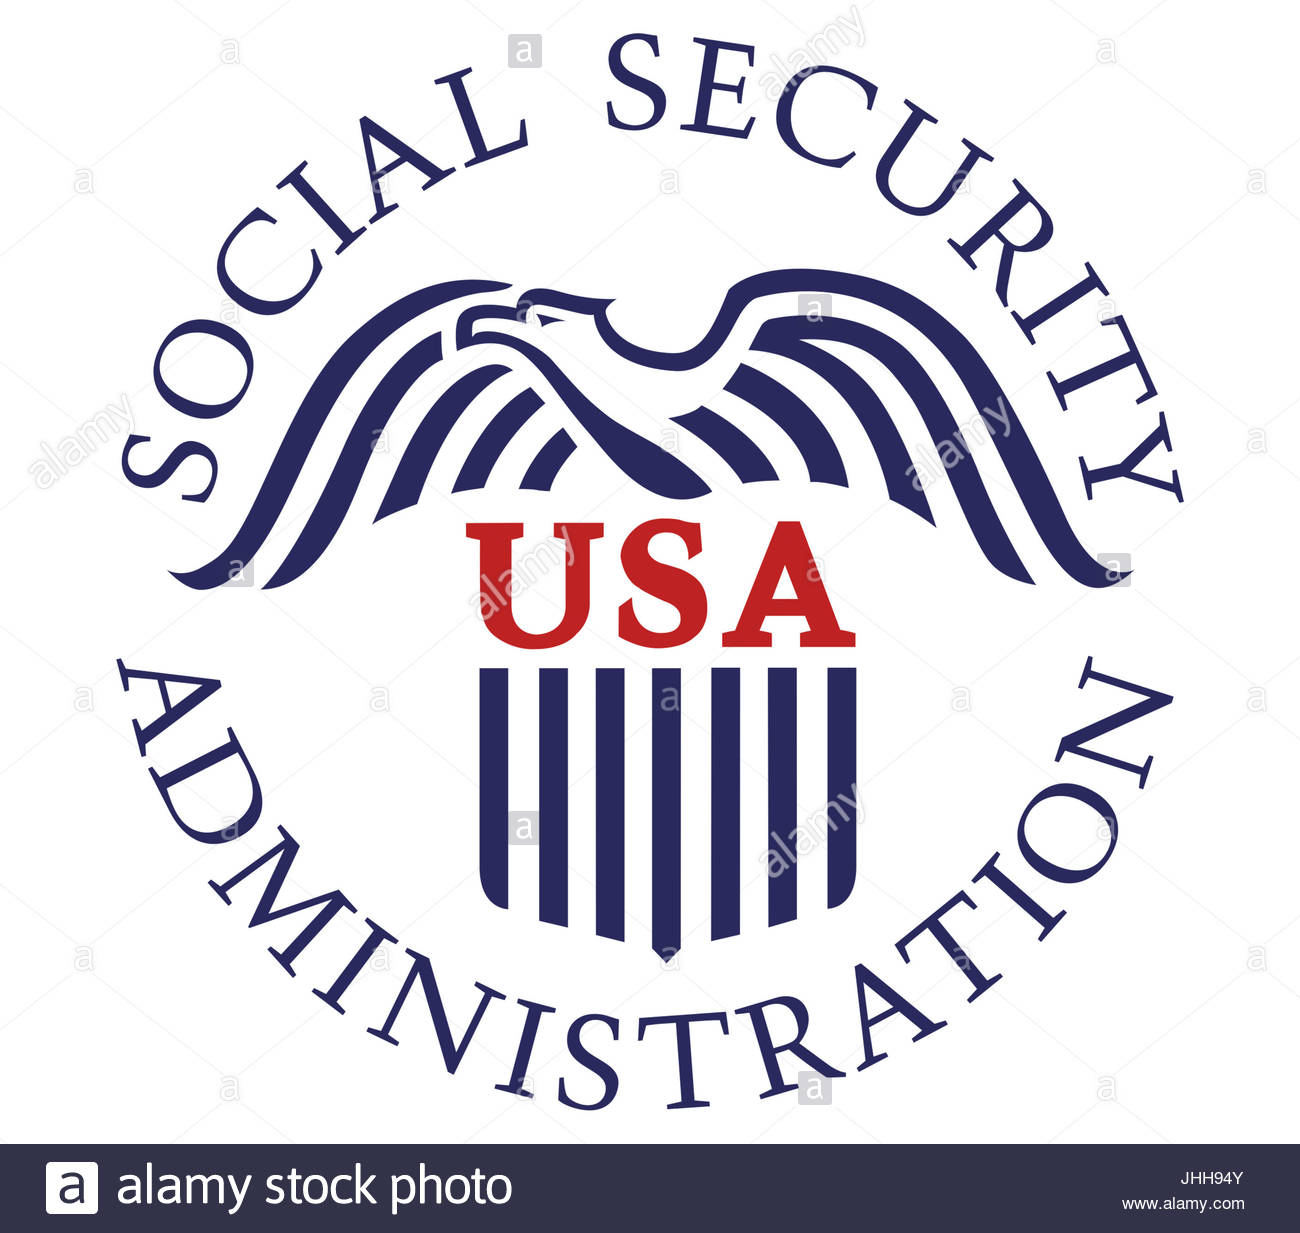 Social Security Administration logo icon - Stock Image